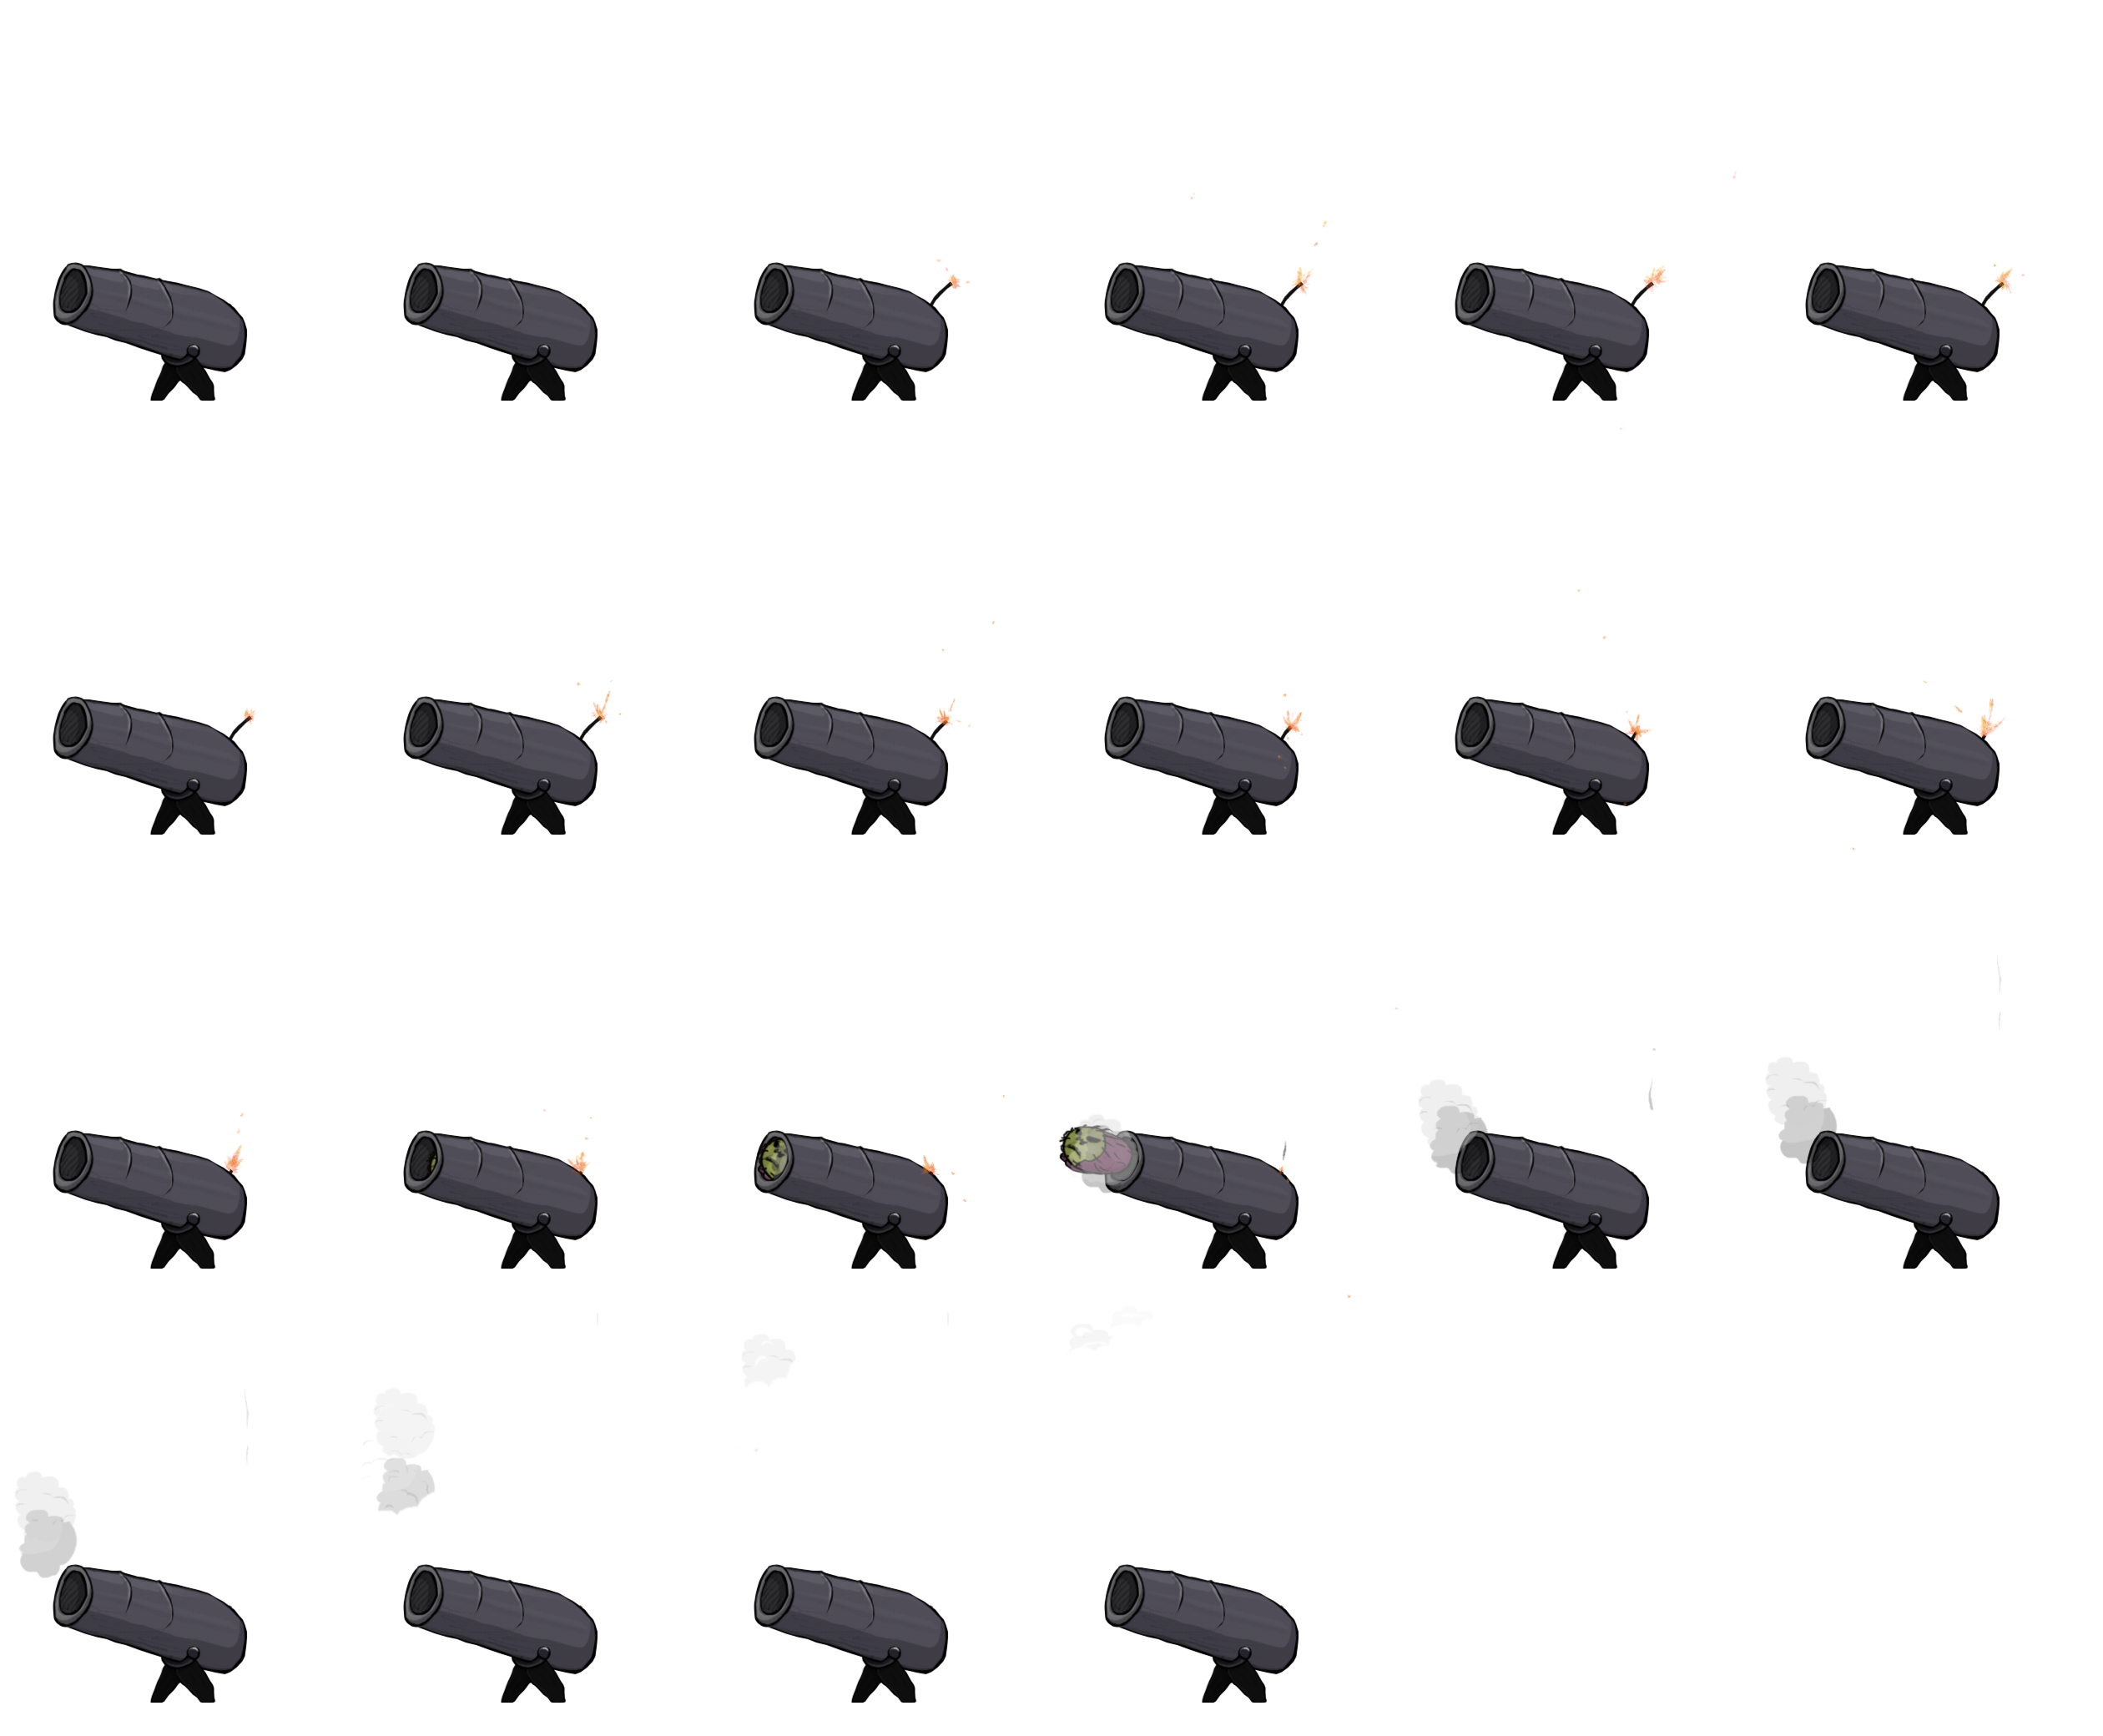 Cannon sprite png. Free game art download